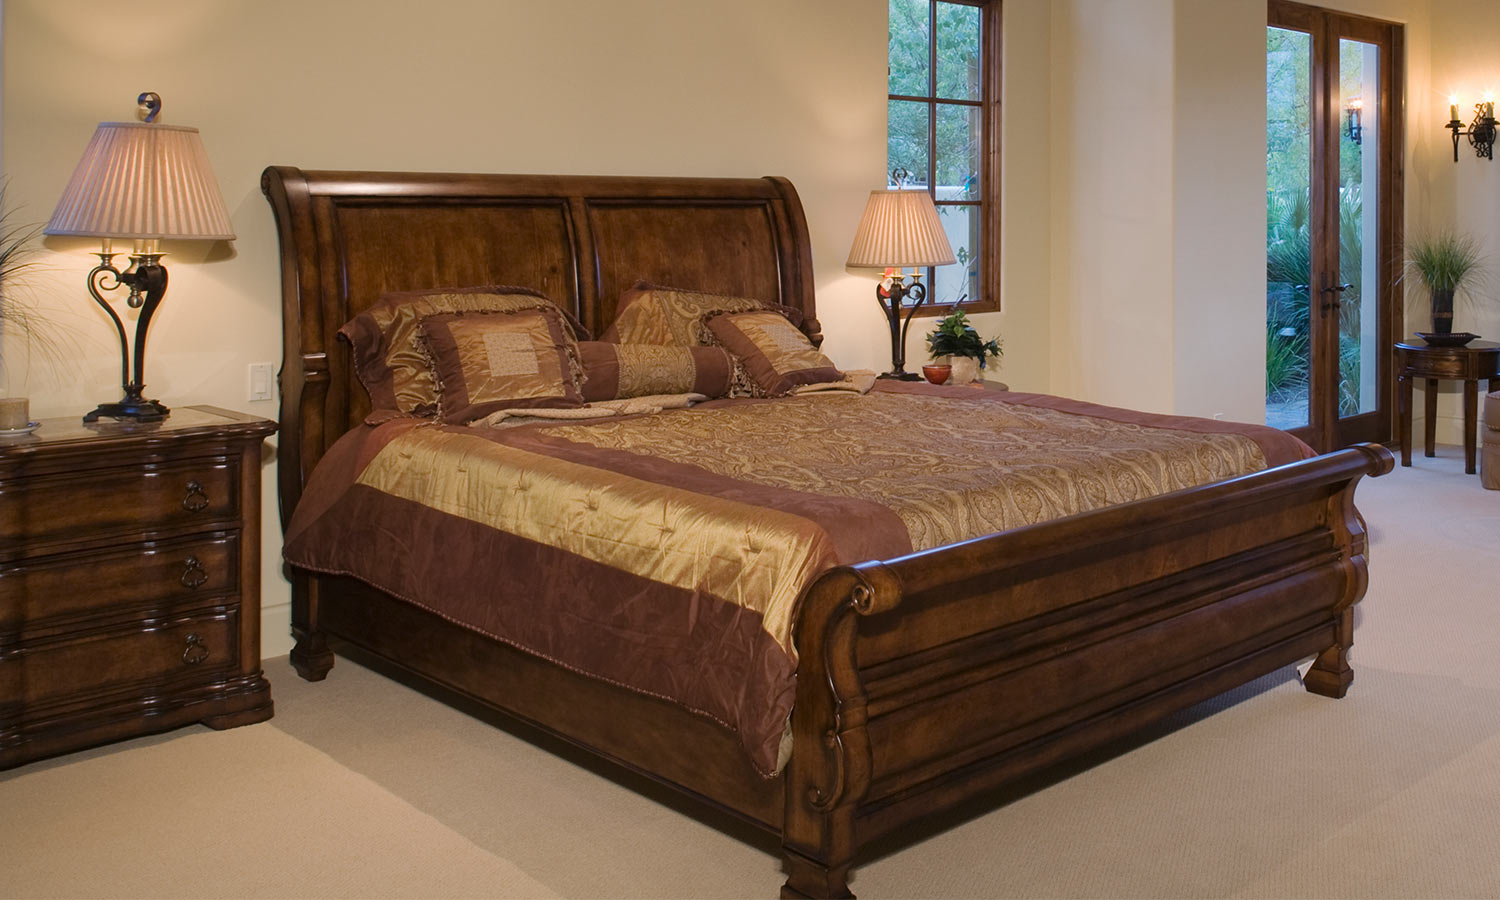 A wooden bedframe witht he headboard and footer curved outwards, resembling a sleigh.